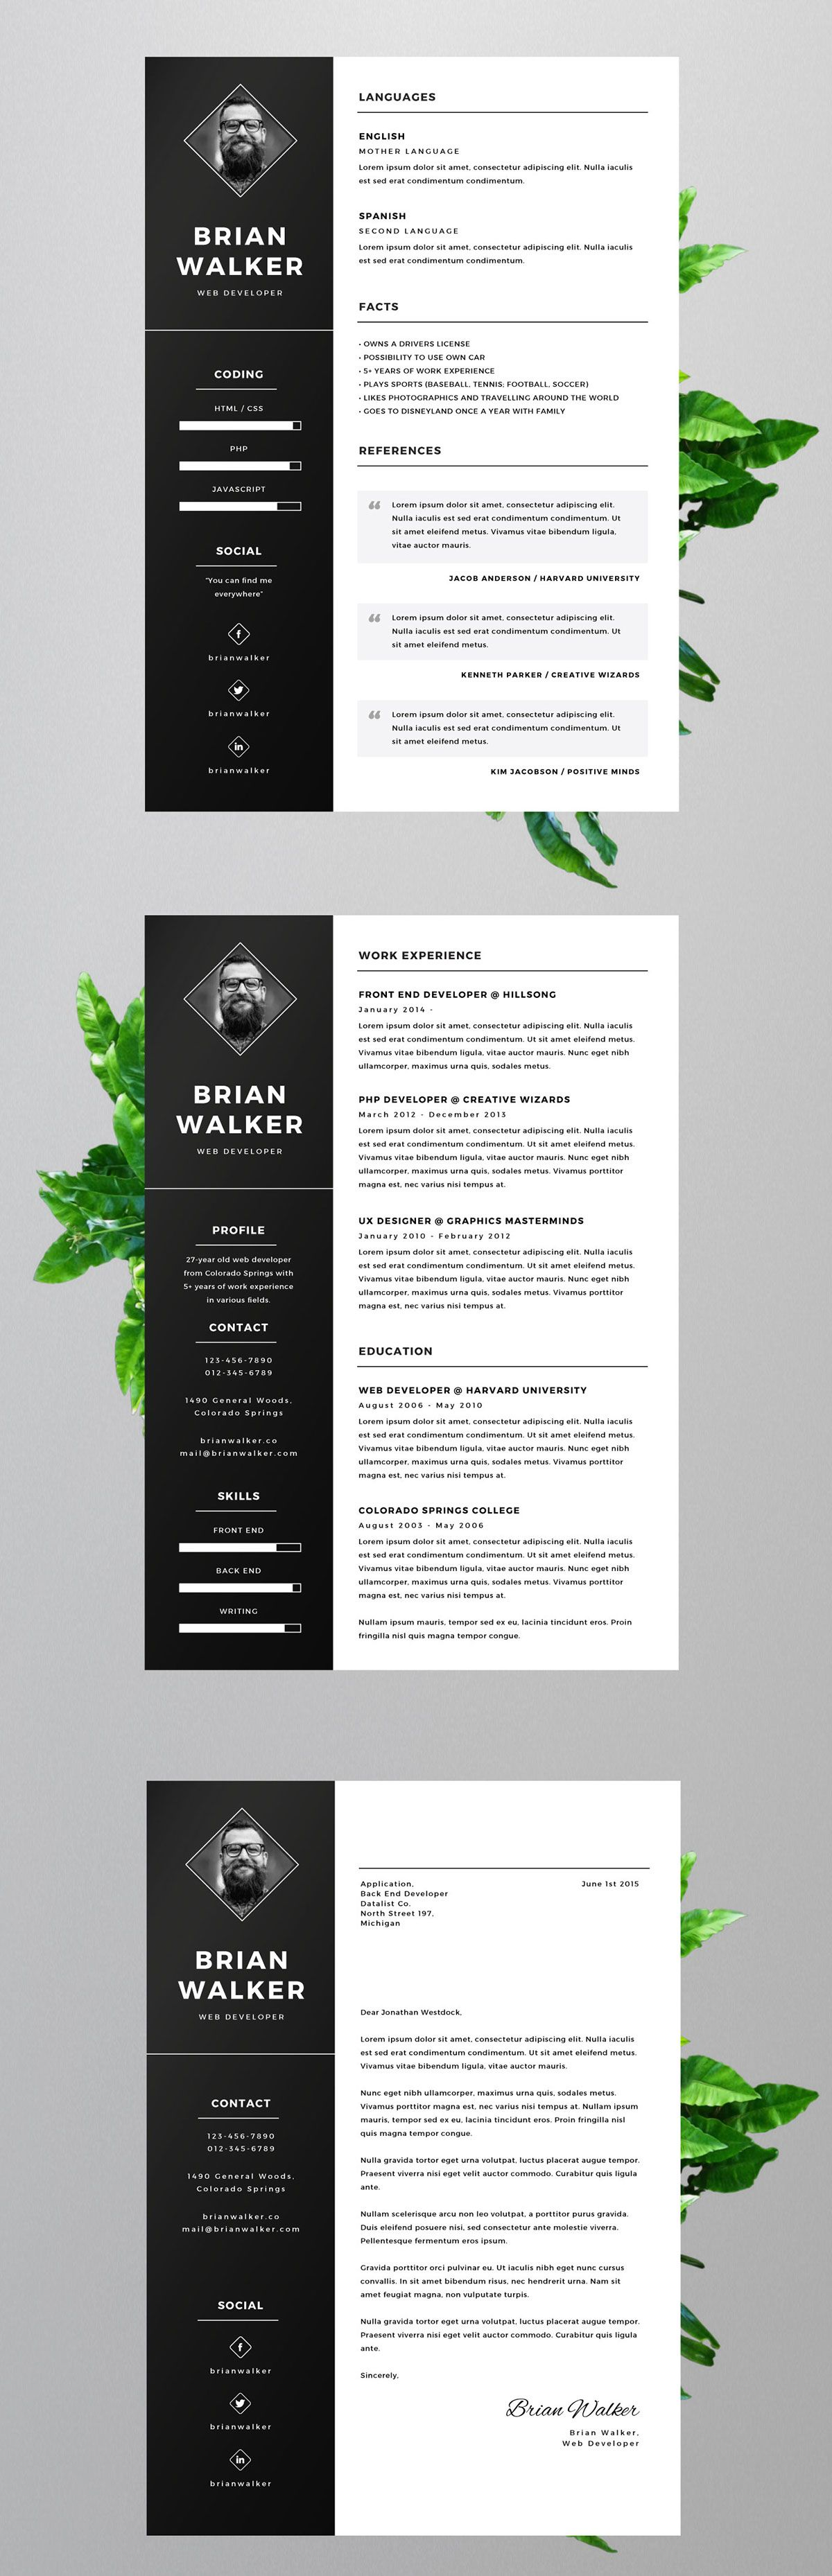 Free resume template for Microsoft Word, Adobe Photoshop and Adobe ...